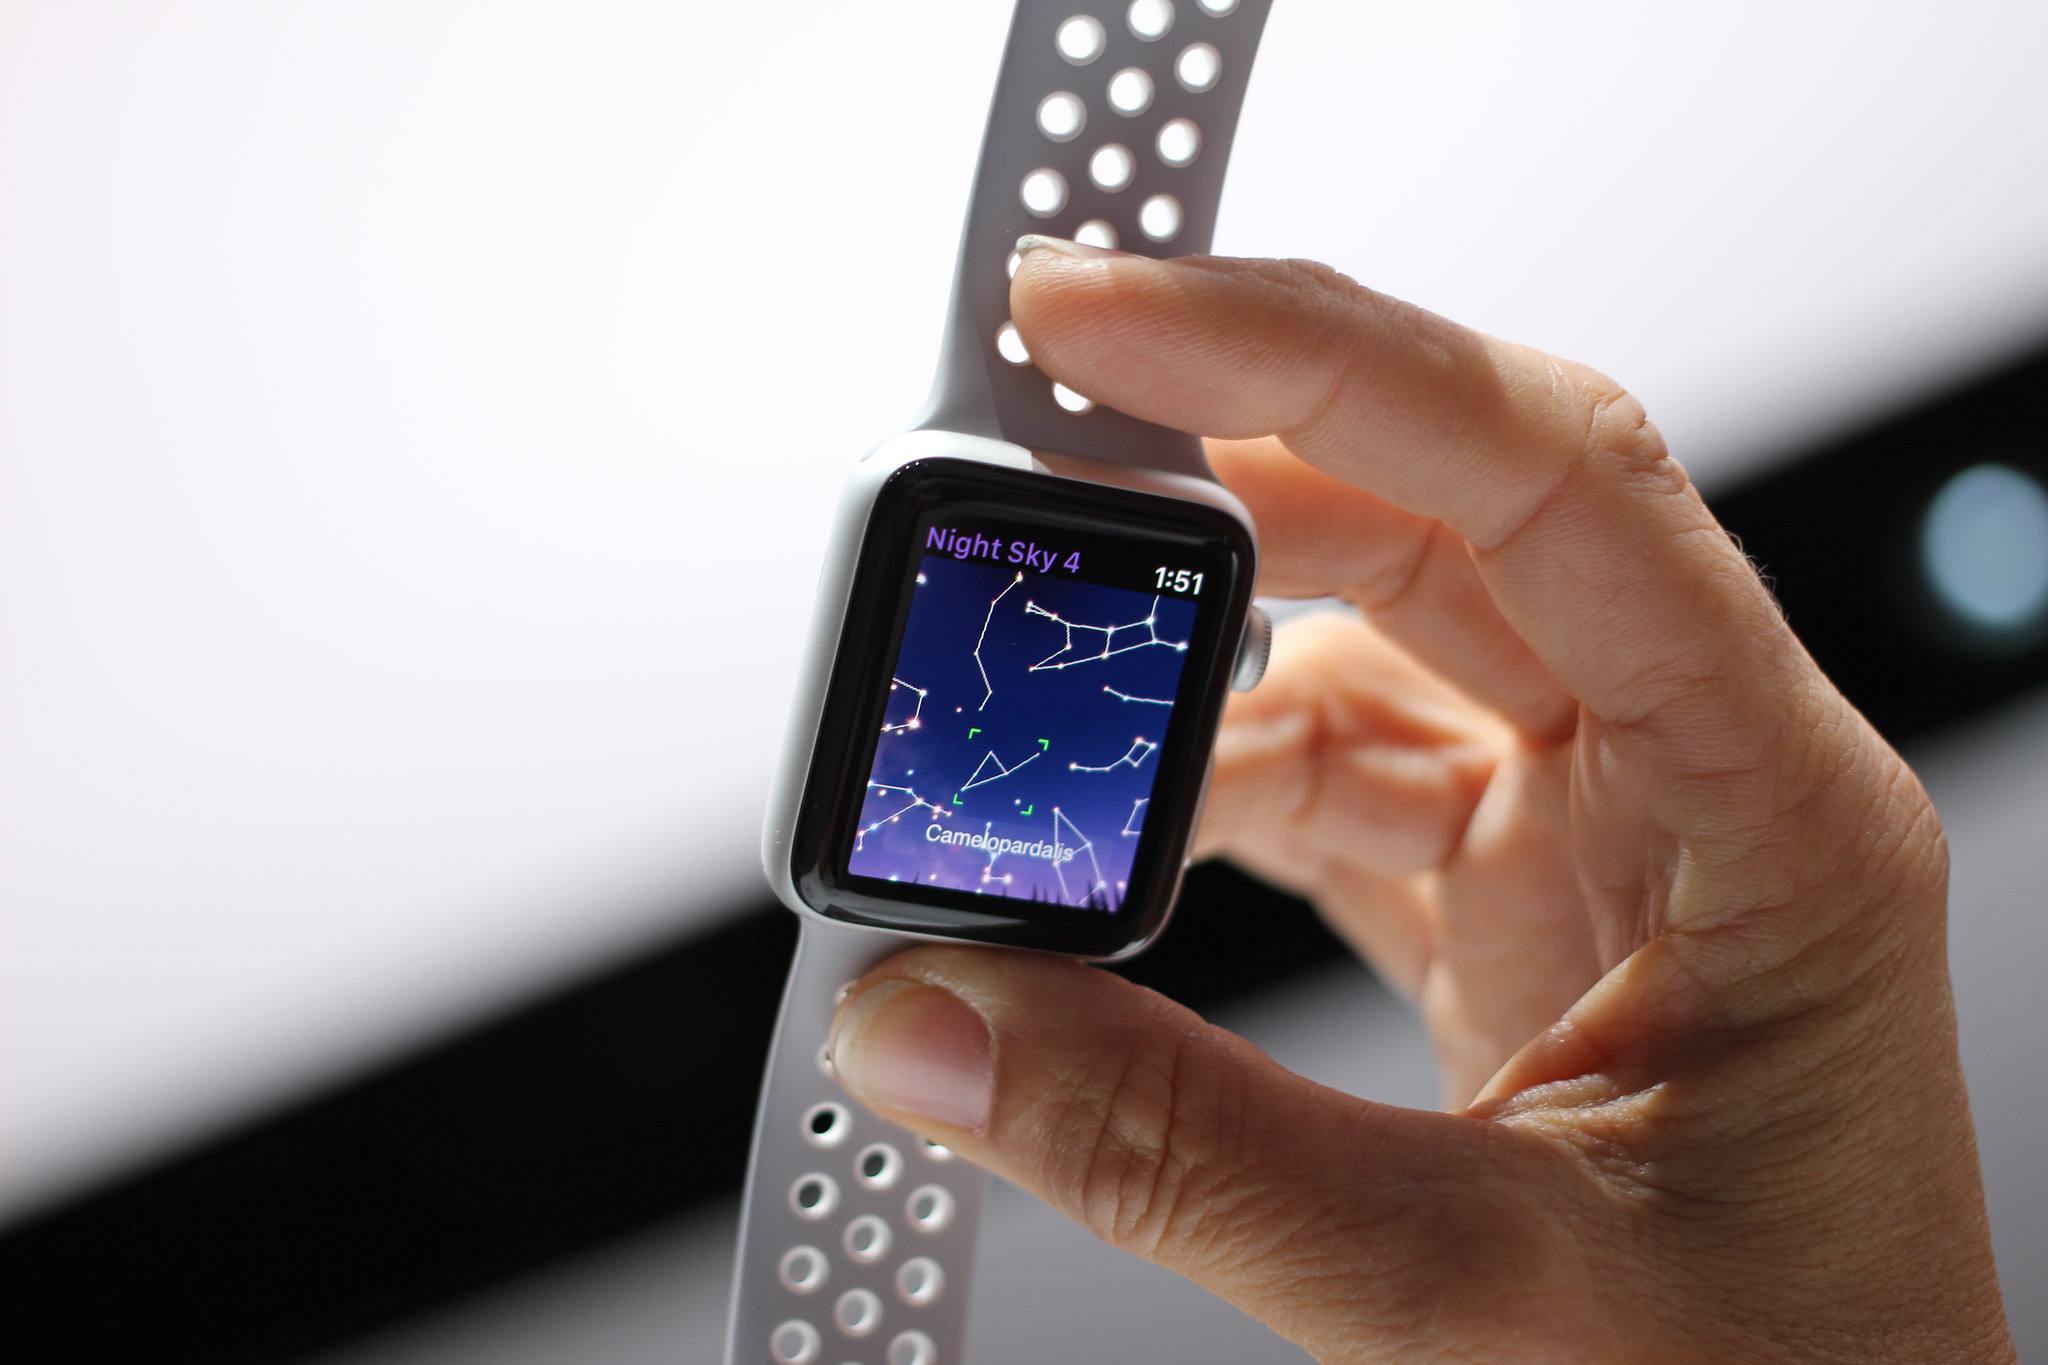 Hand holding a Nike Apple Watch with Night Sky 4 on the screen